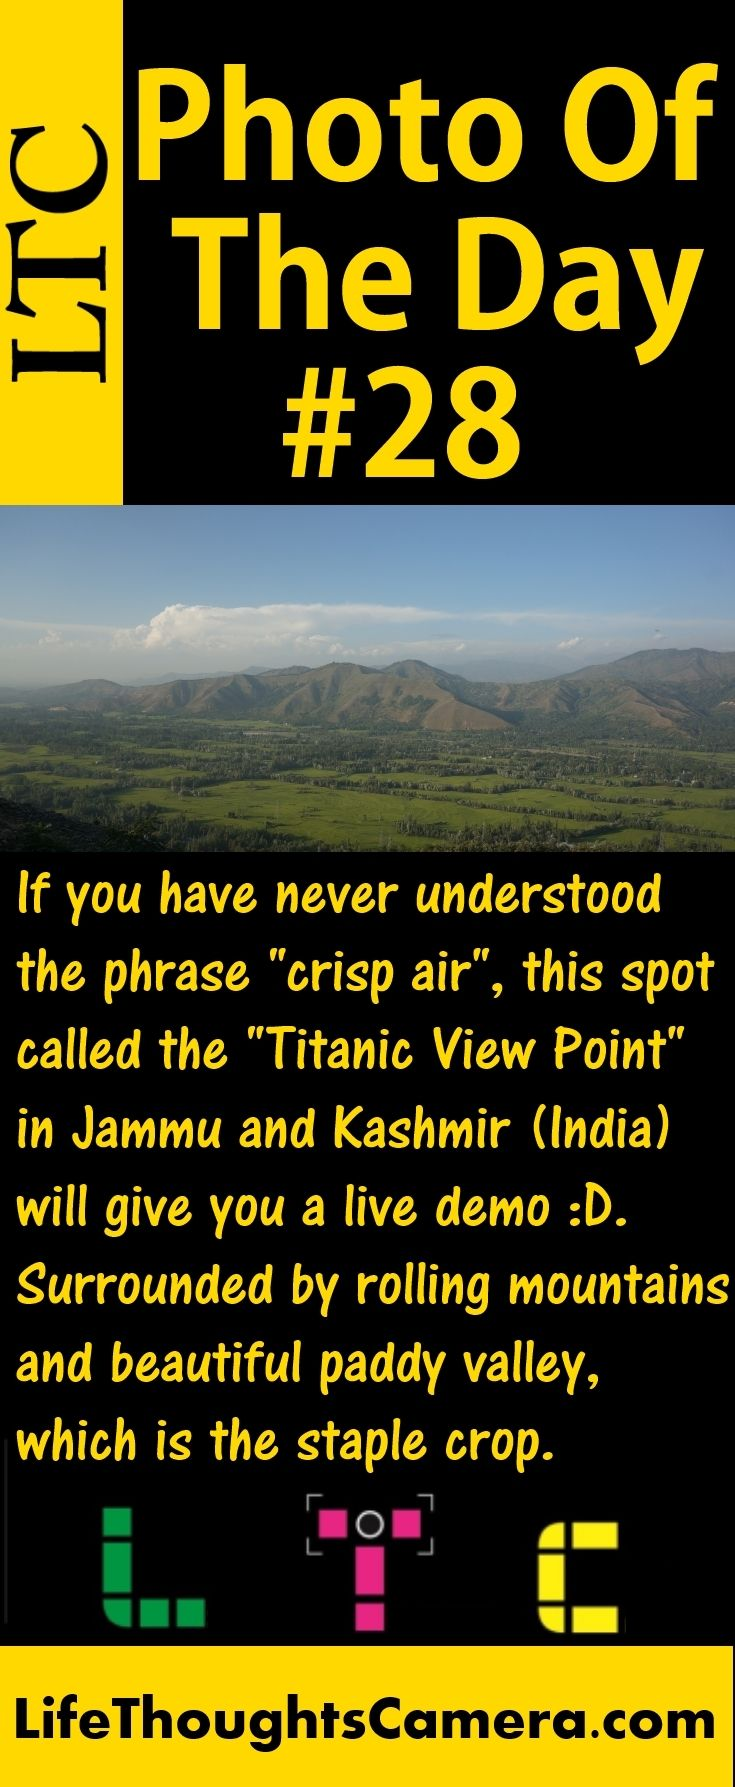 "Photo Of The Day #28.  If you have never understood the phrase ""Crisp Air"", this spot called the ""Titanic View Point"" in Jammu and Kashmir (India) will give you a live demo.  Surrounded by rolling mountains and beautiful paddy valley, which is the staple crop. #LifeThoughtsCamera #PhotoBlog #Travel #India #JammuAndKashmir #TitanicViewPoint #Bengaluru #Karnataka #INDIA #BengaluruBlogger #BengaluruPhotoBlogger #IndianBlogger #IndianPhotoBlogger #Nex5R #LifeStyle #LifeStyleBlogger…"